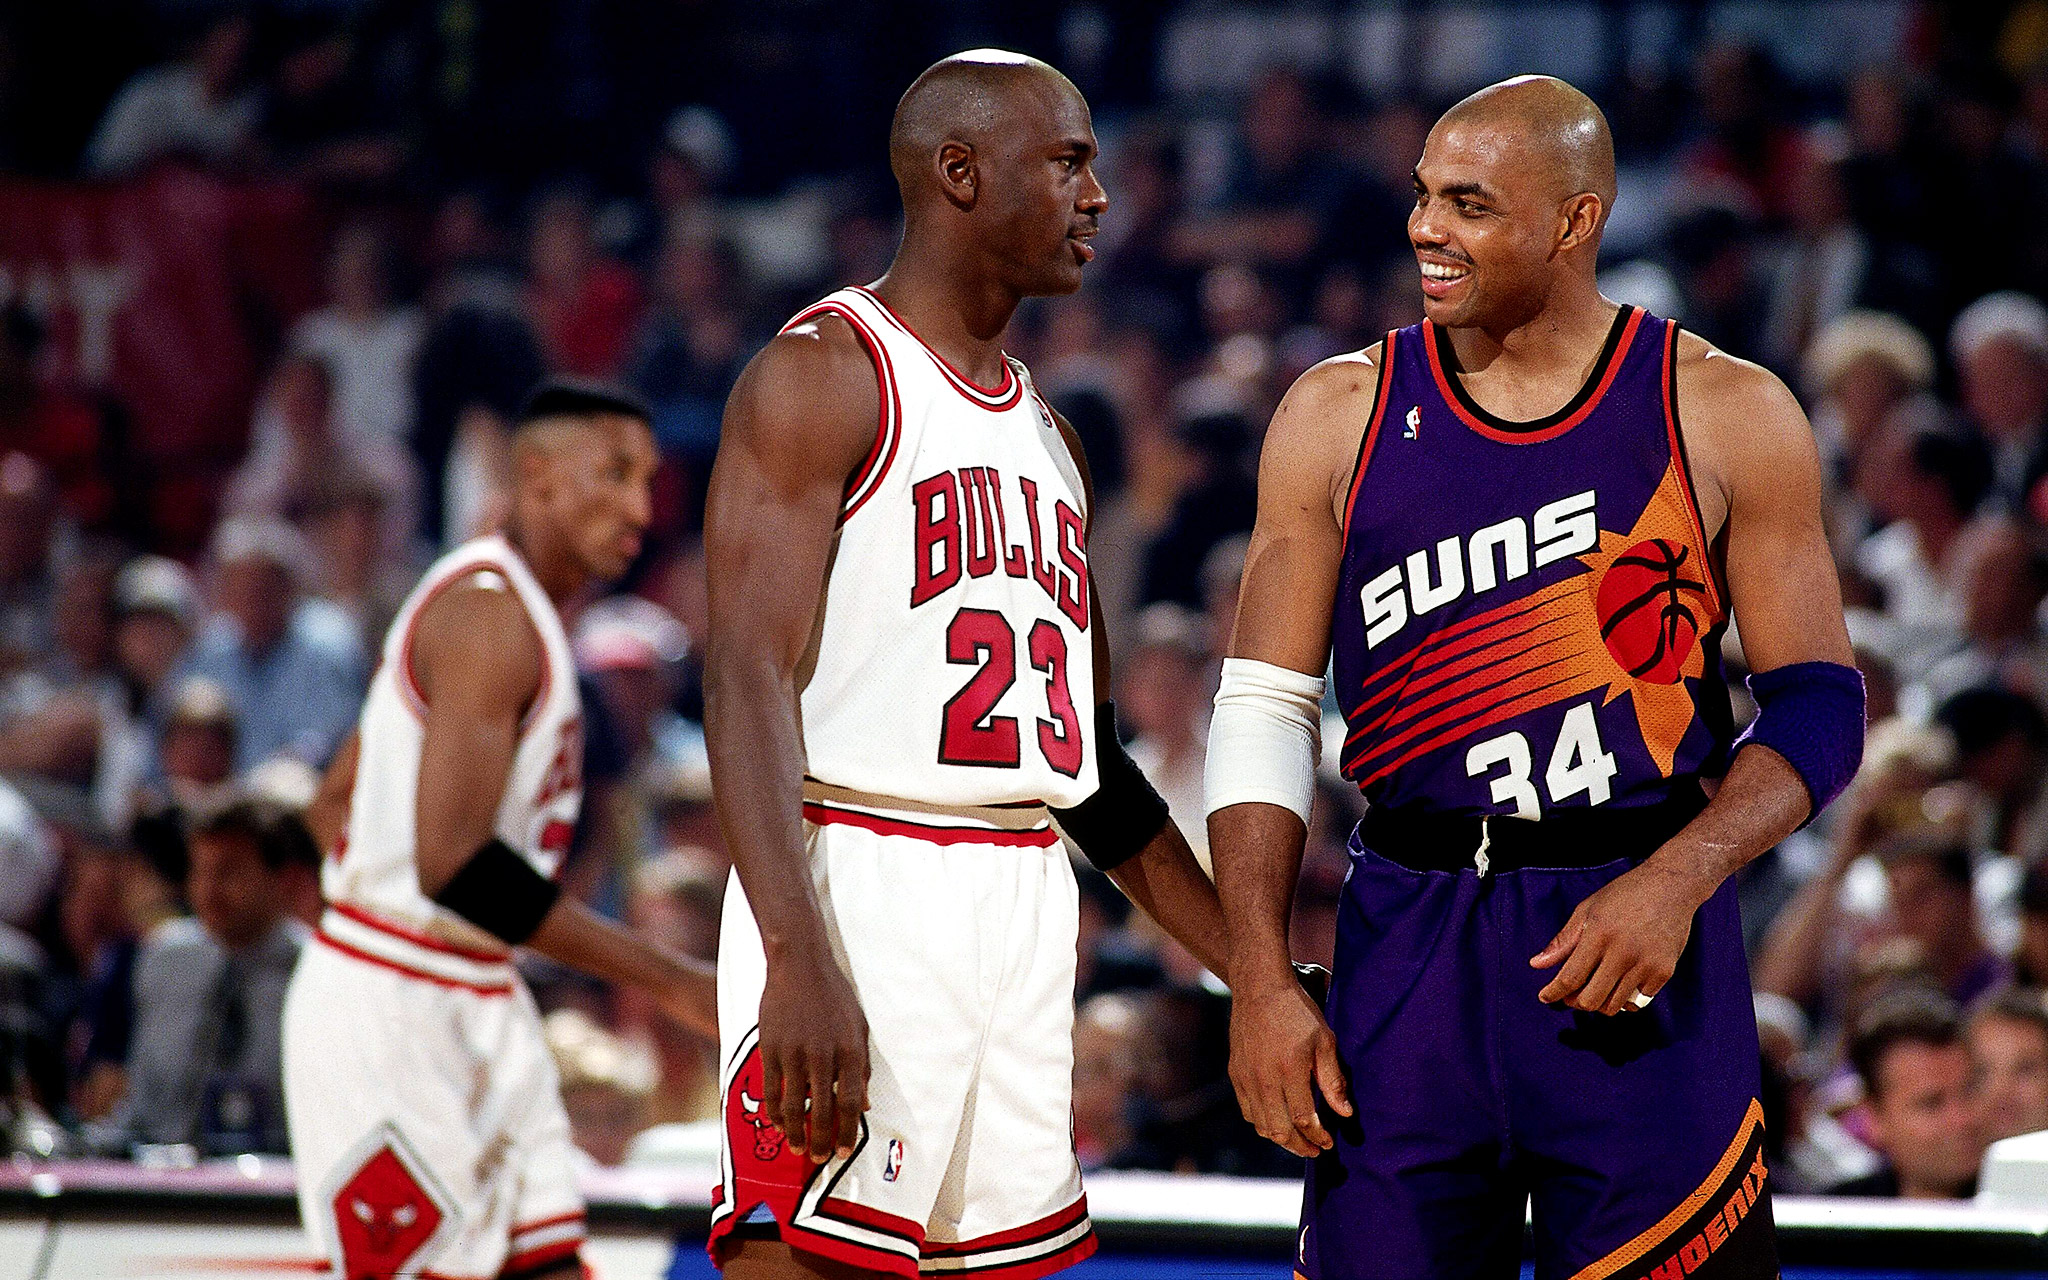 Air Jordan vs. Sir Charles